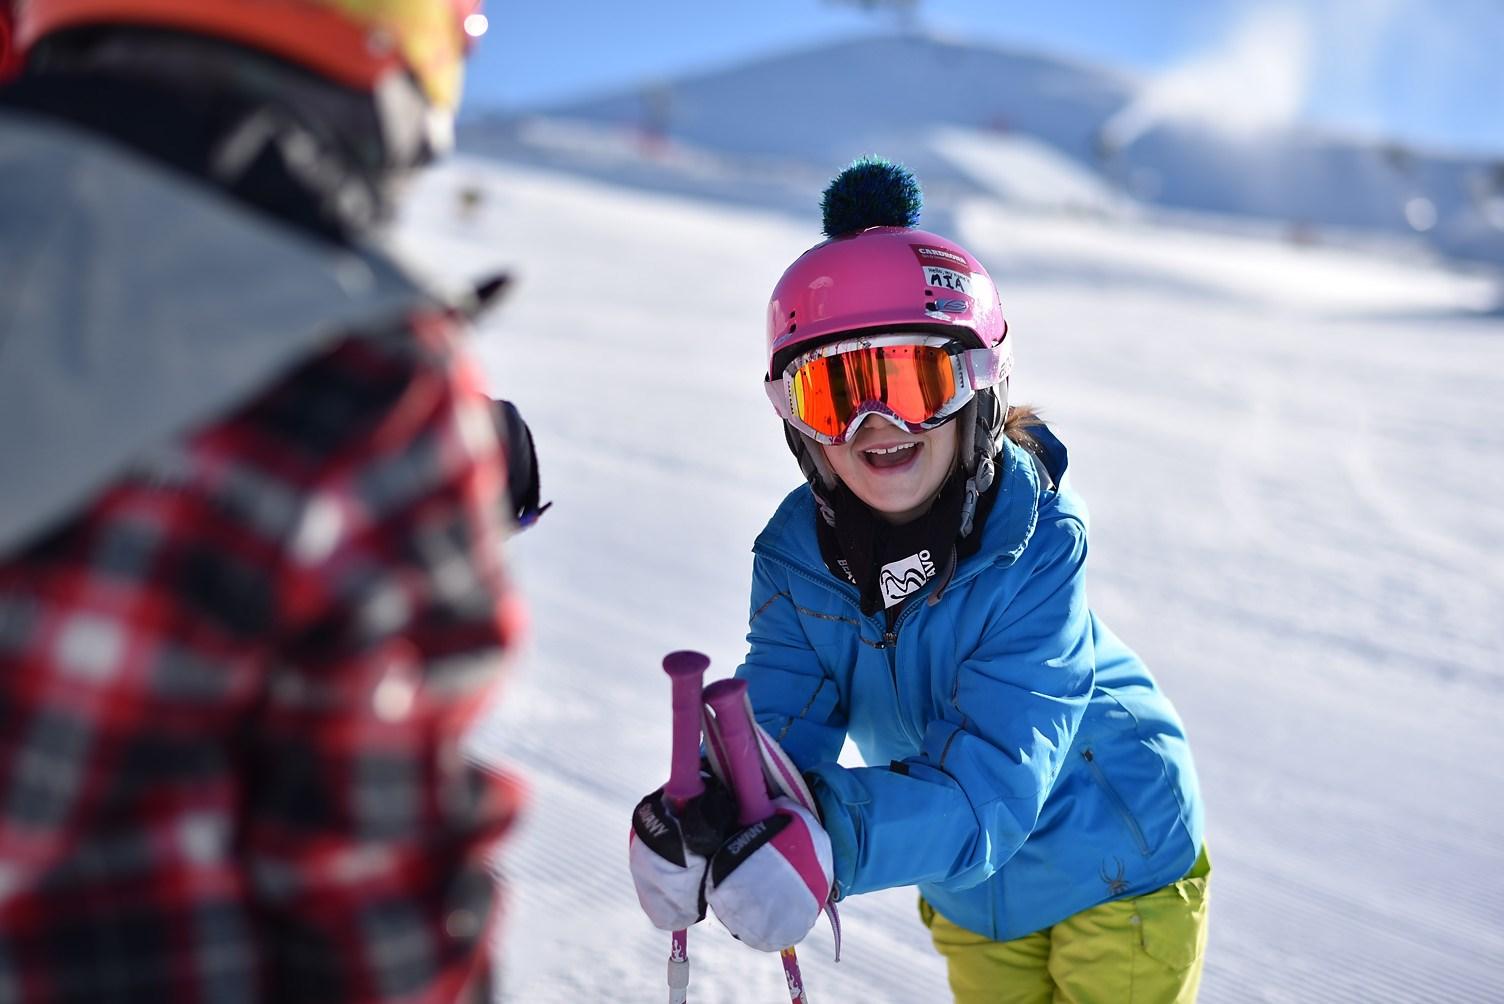 cardrona-local-kids-programmes-header-local kids ski lessons-local kids snowboard lessons